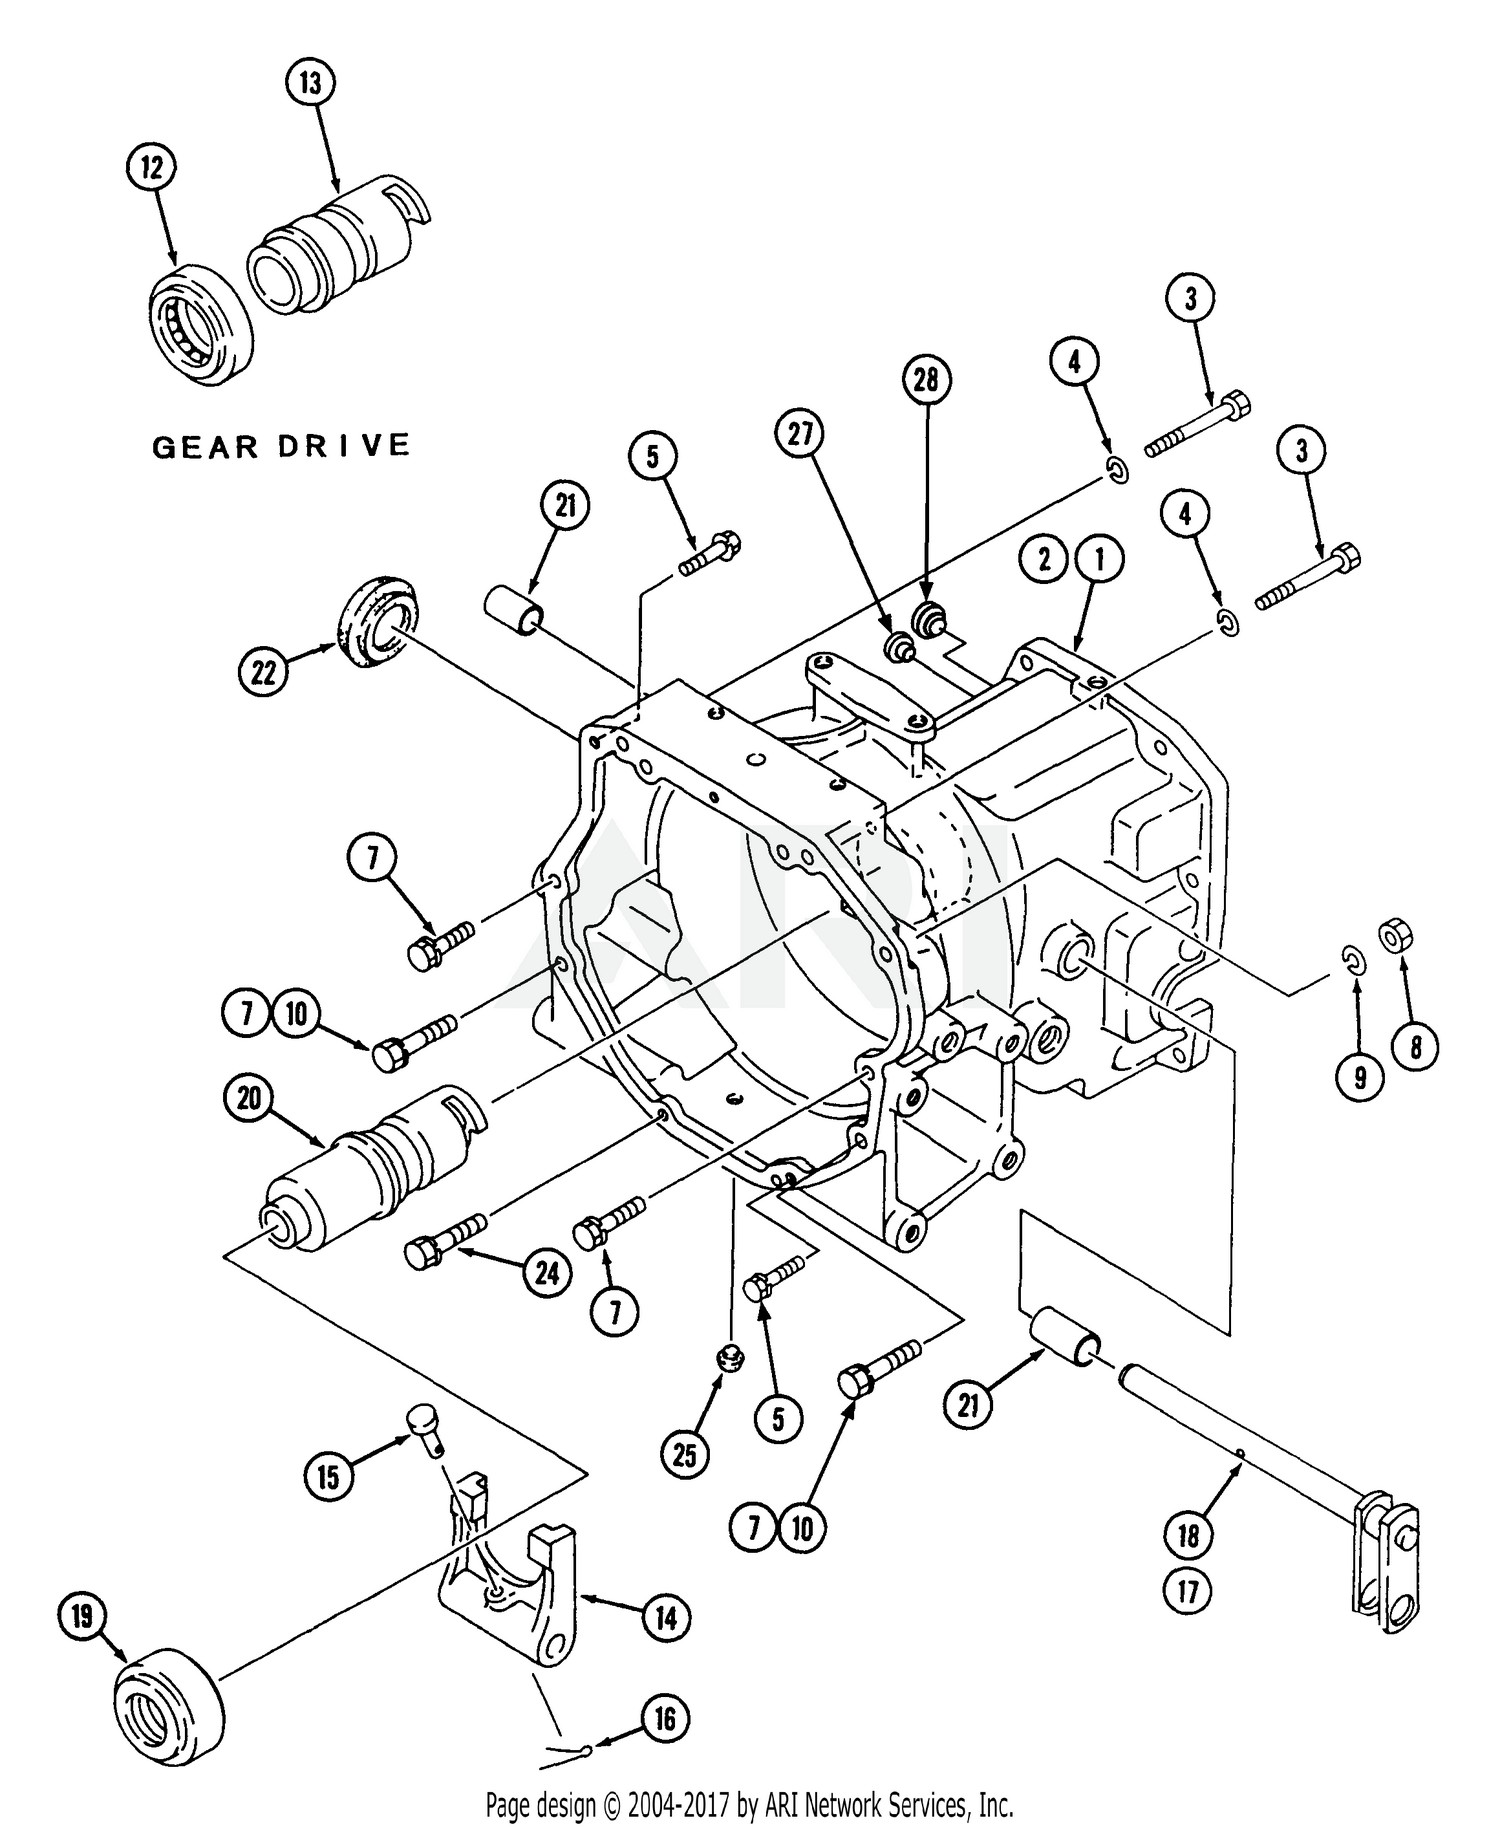 Cub Cadet Parts Diagram Cub Cadet Parts Diagrams Cub Cadet 7274 Tractor 545 436d100 544